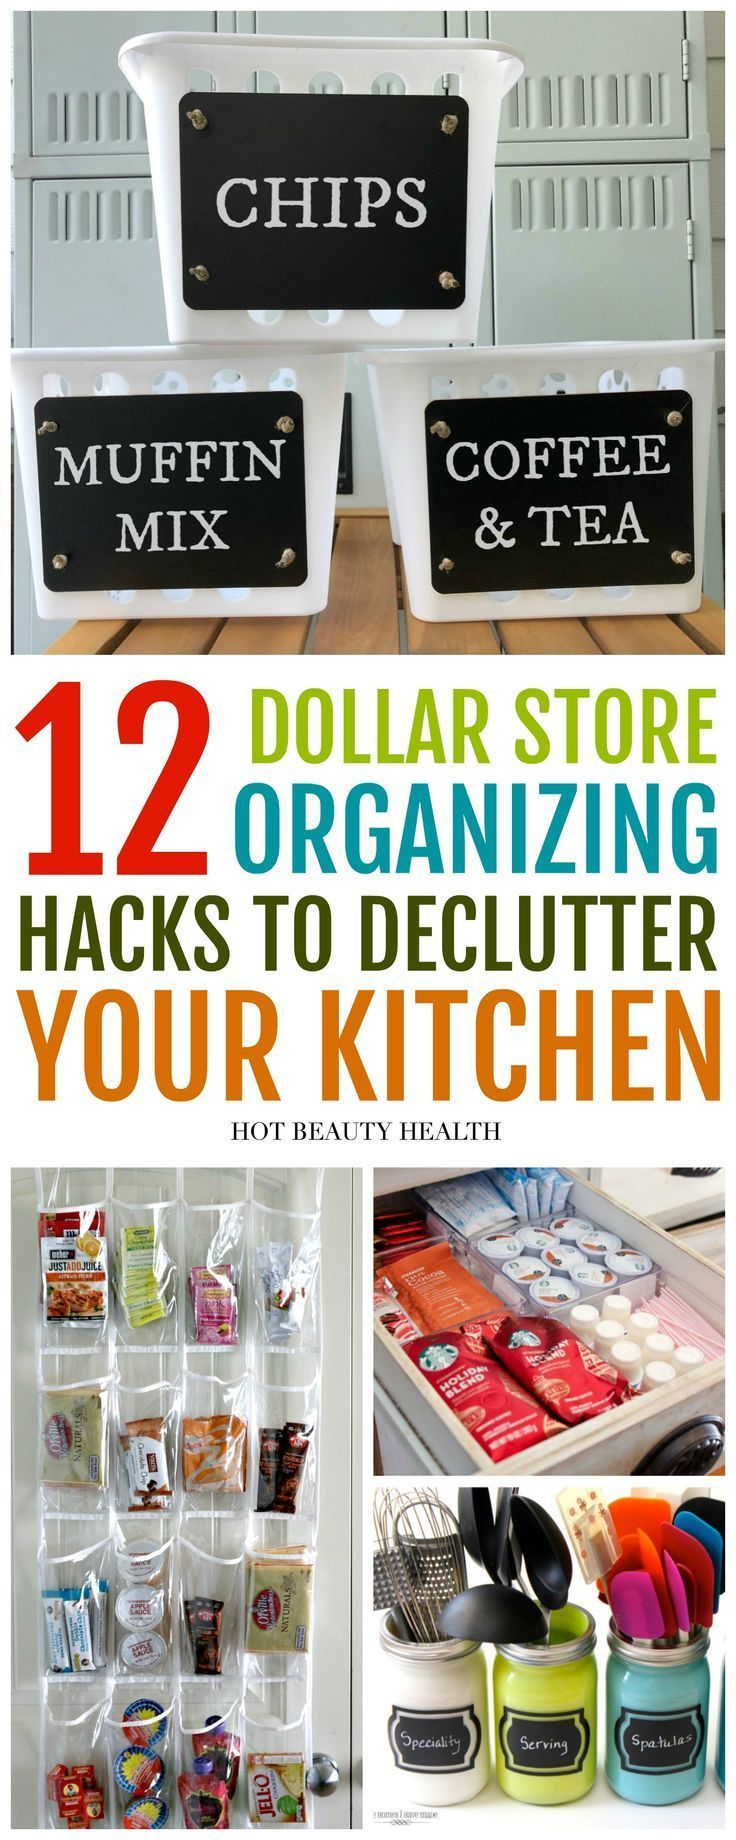 12 Dollar Store Kitchen Hacks That'll Blow Your Mind